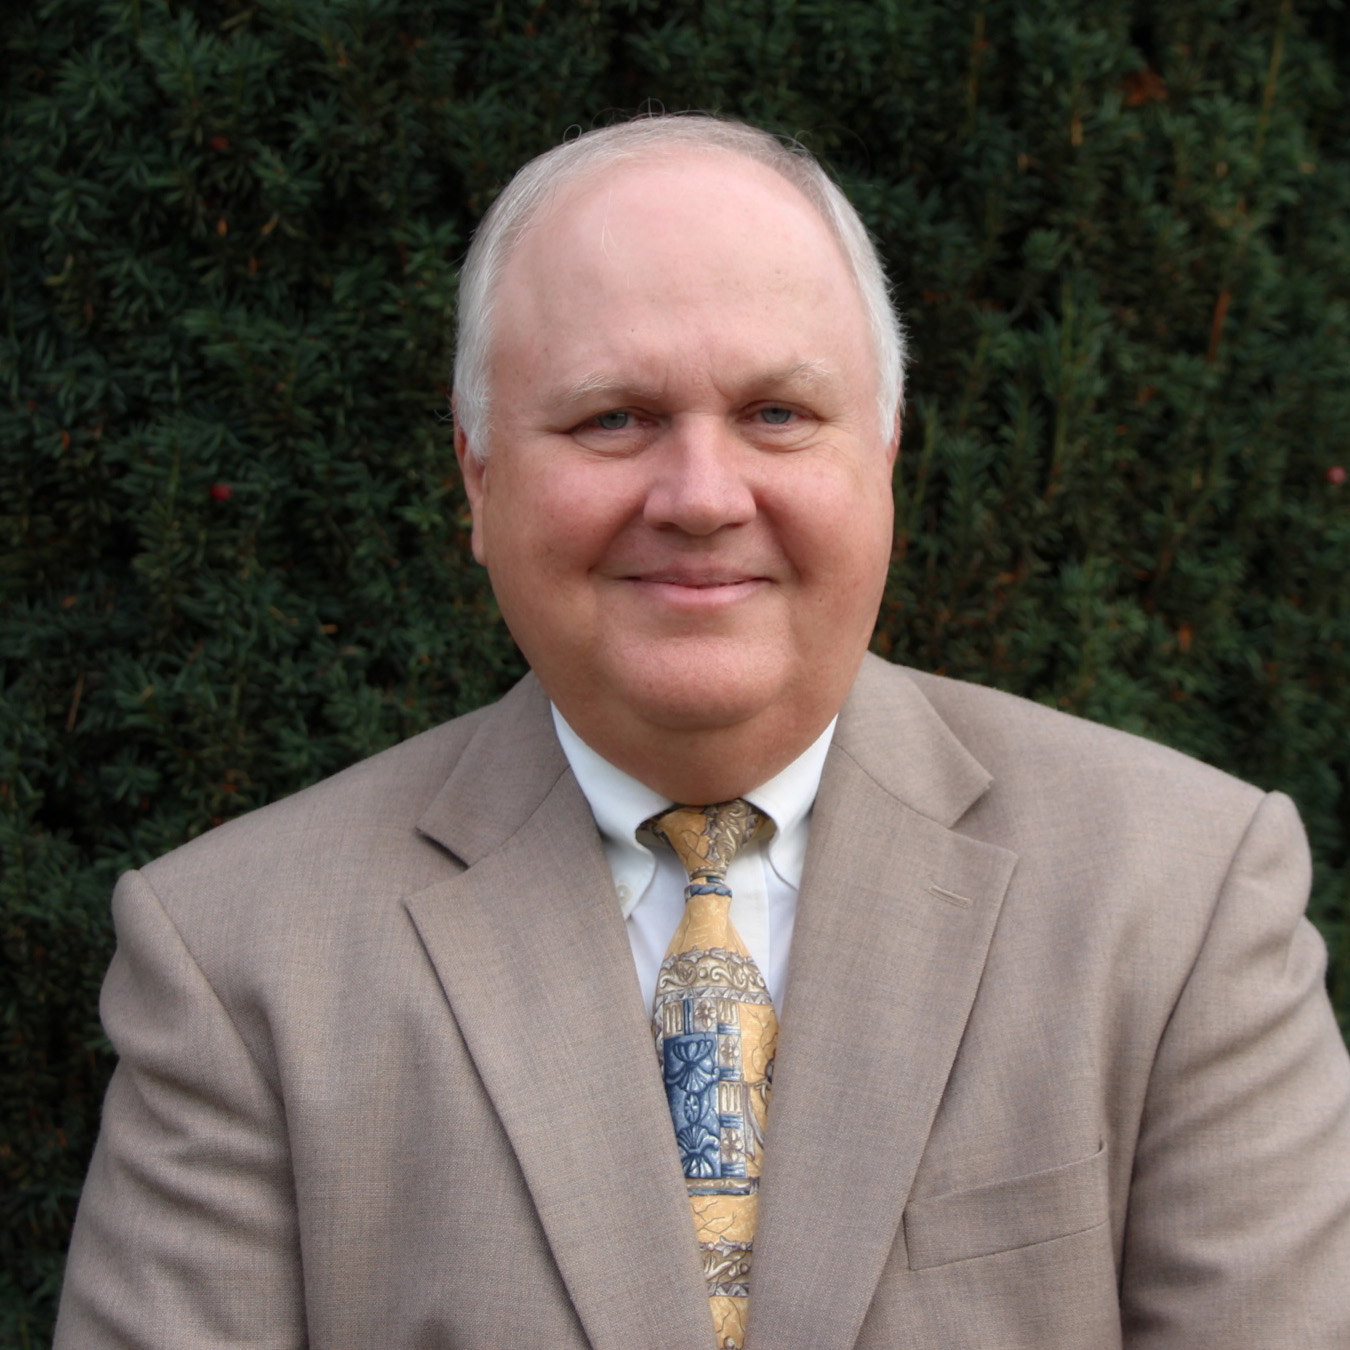 Attorney Brent Lake  | Wills, t  rusts, e  state planning, probate, elder law real estate and business law.